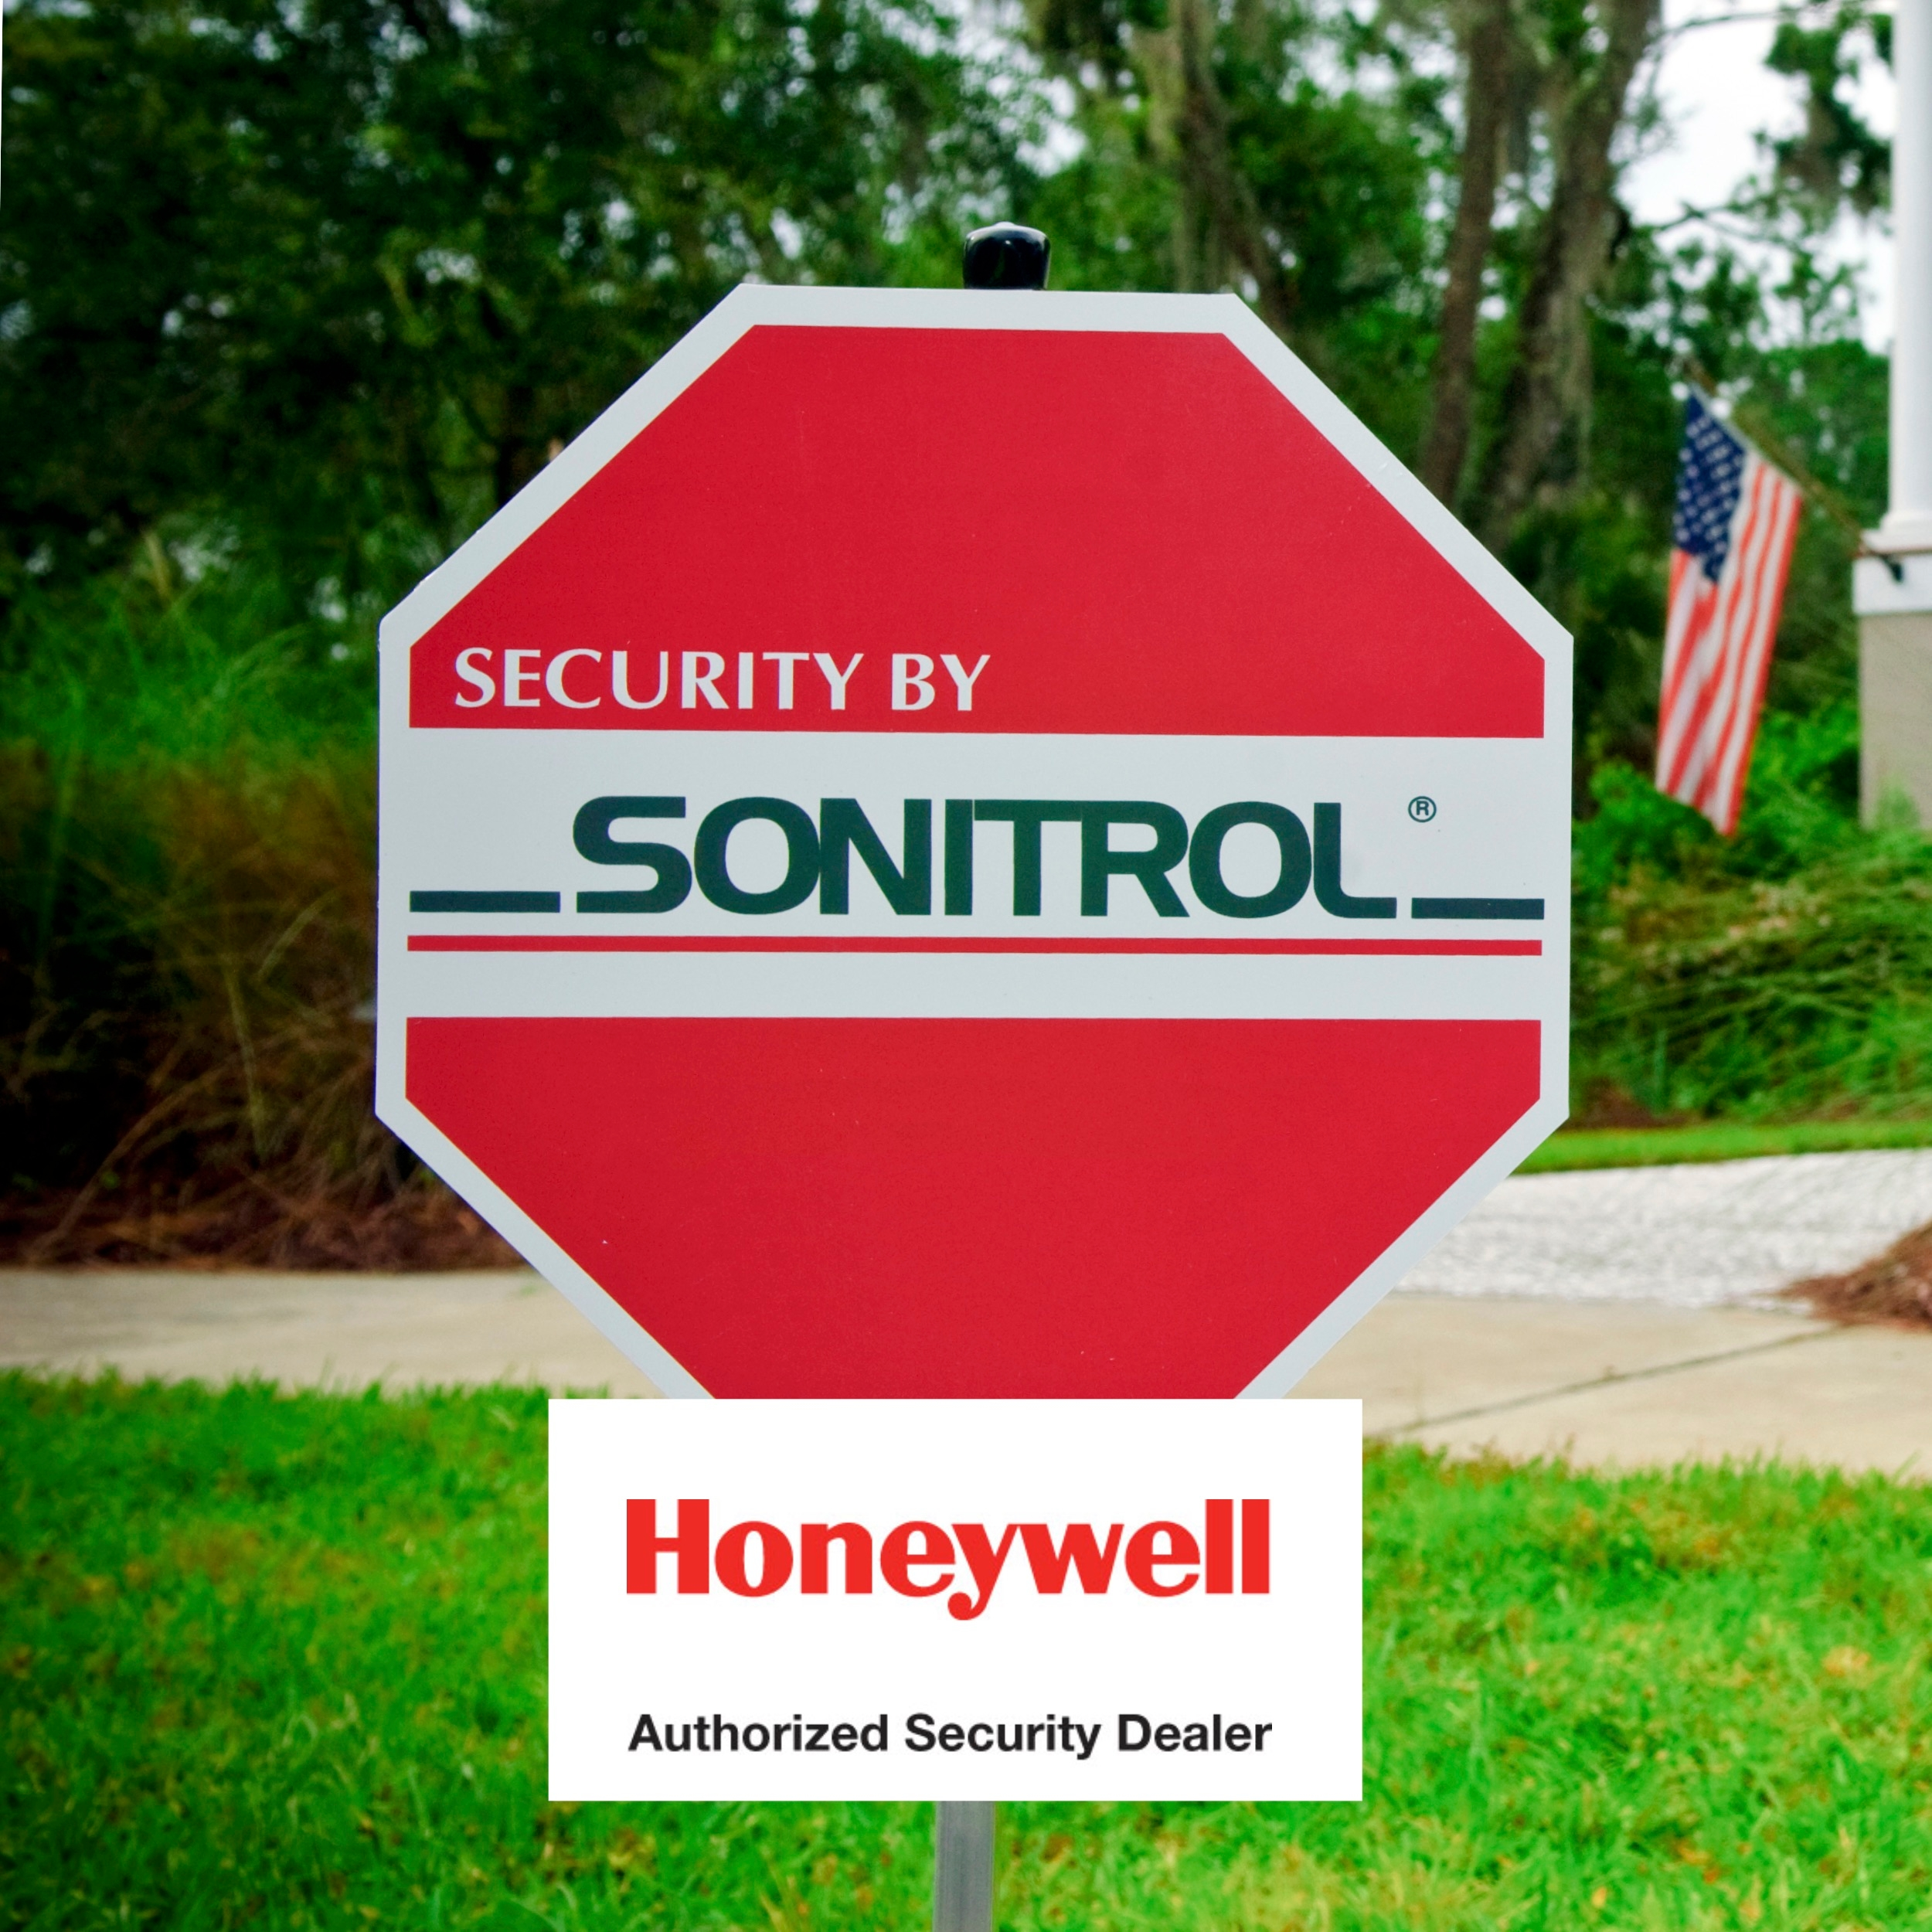 Sonitrol Security Systems